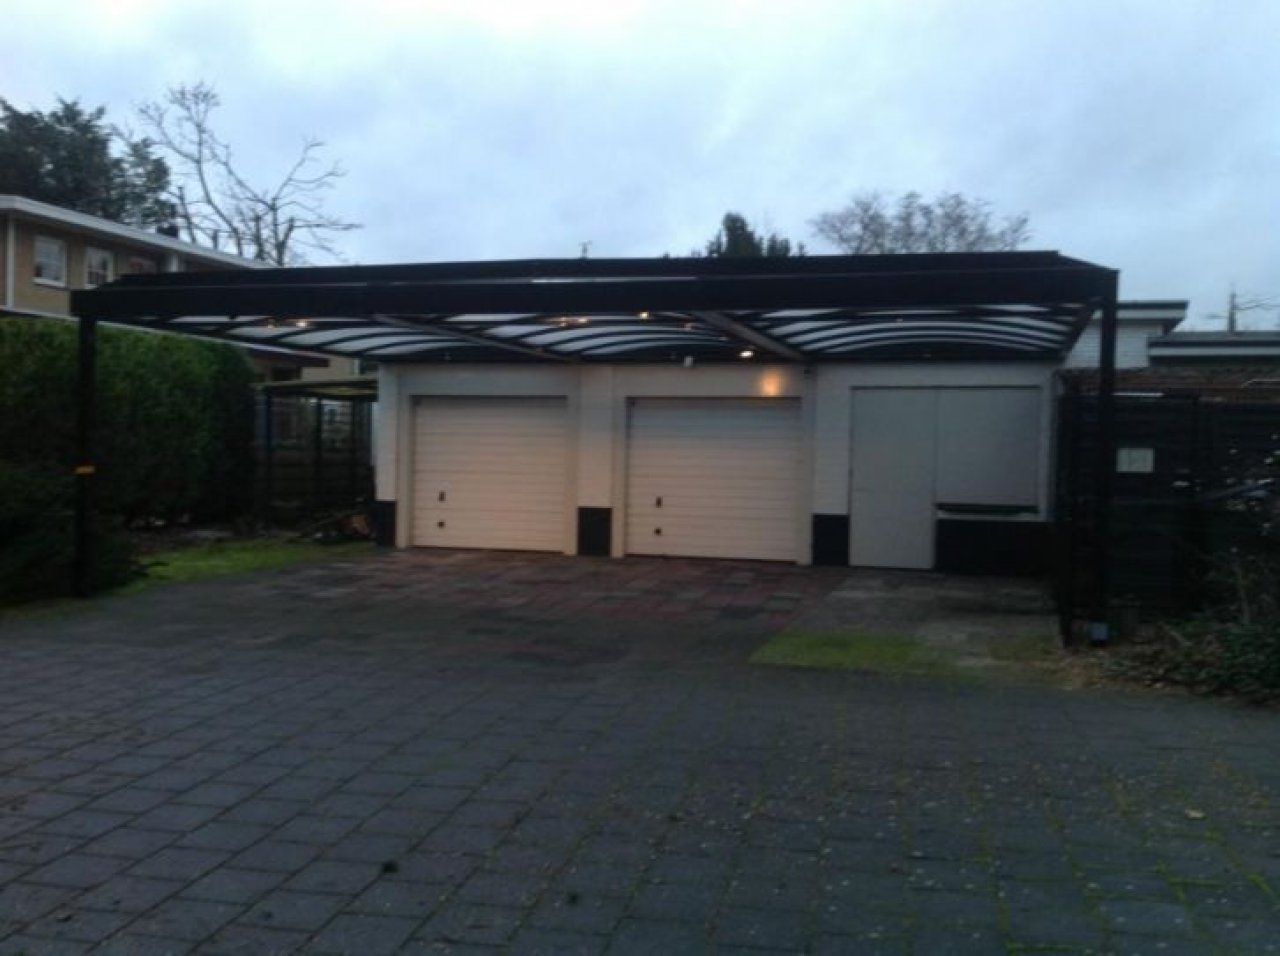 https://www.carportharderwijk.nl/fotoalbums/albums/1280/carports/carport-85-m-breed.jpg